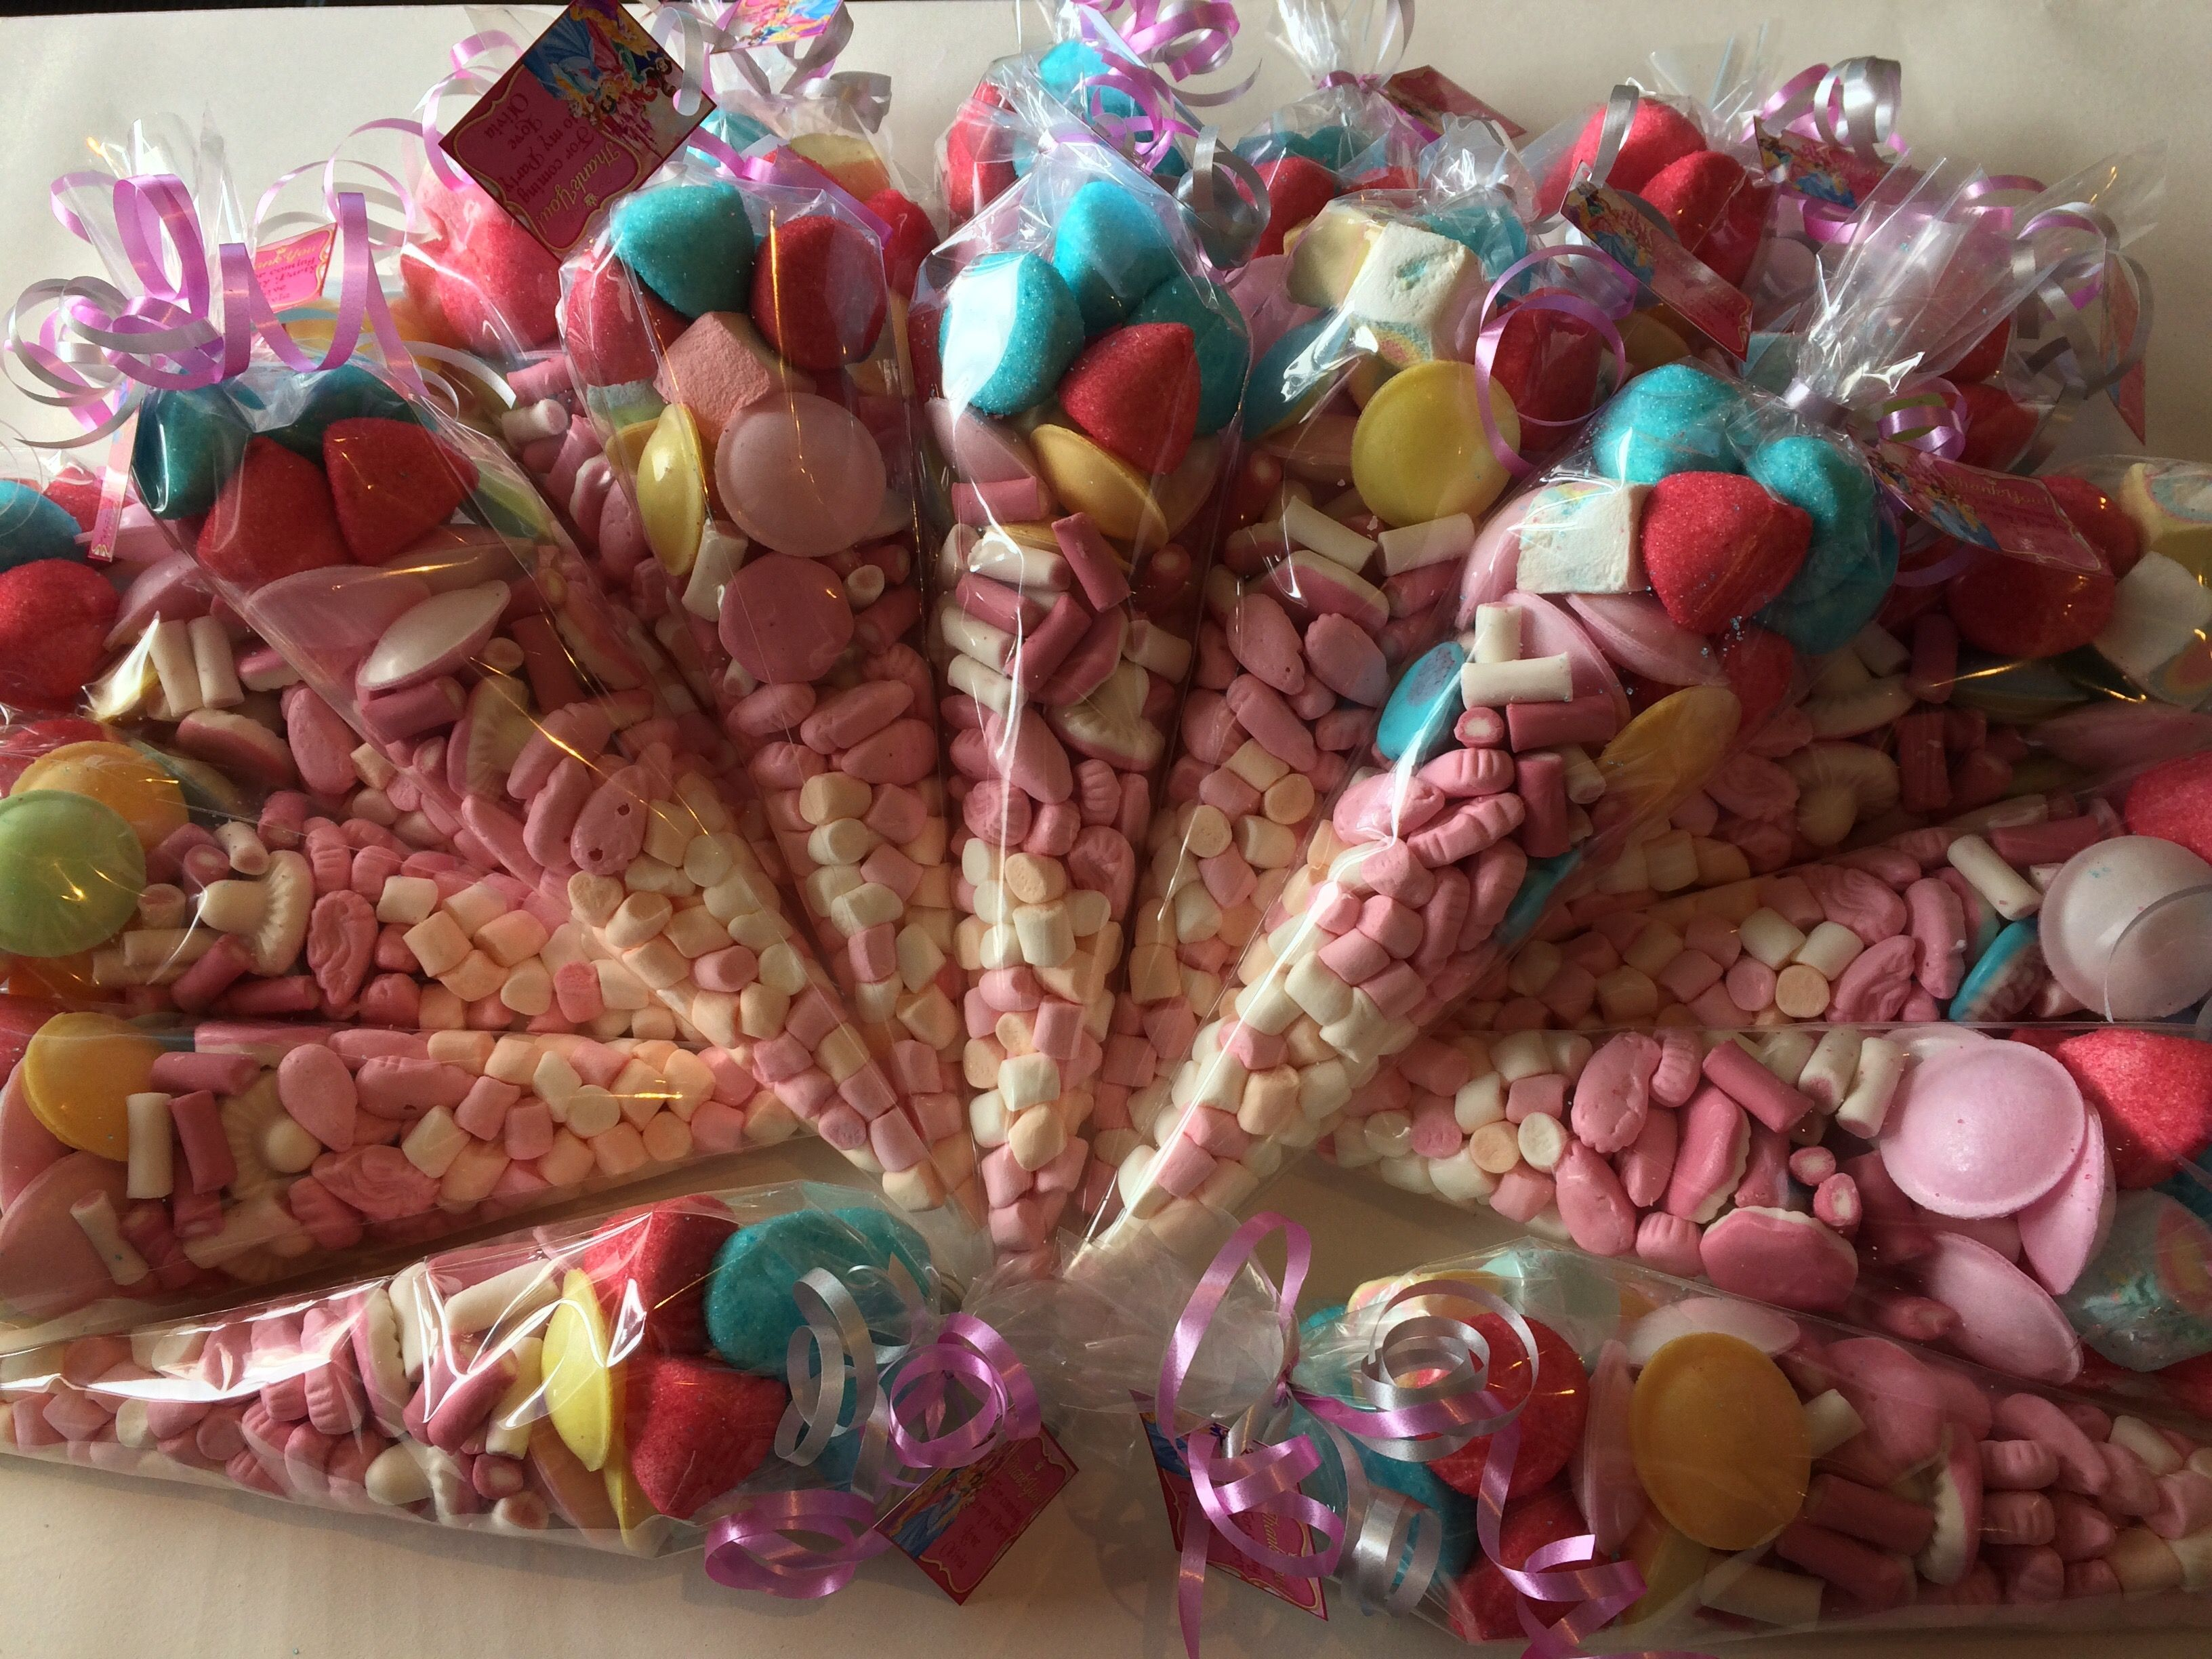 Princess Candy Cones by Sweet Memories #princess #candy #candycones #sweetmemories